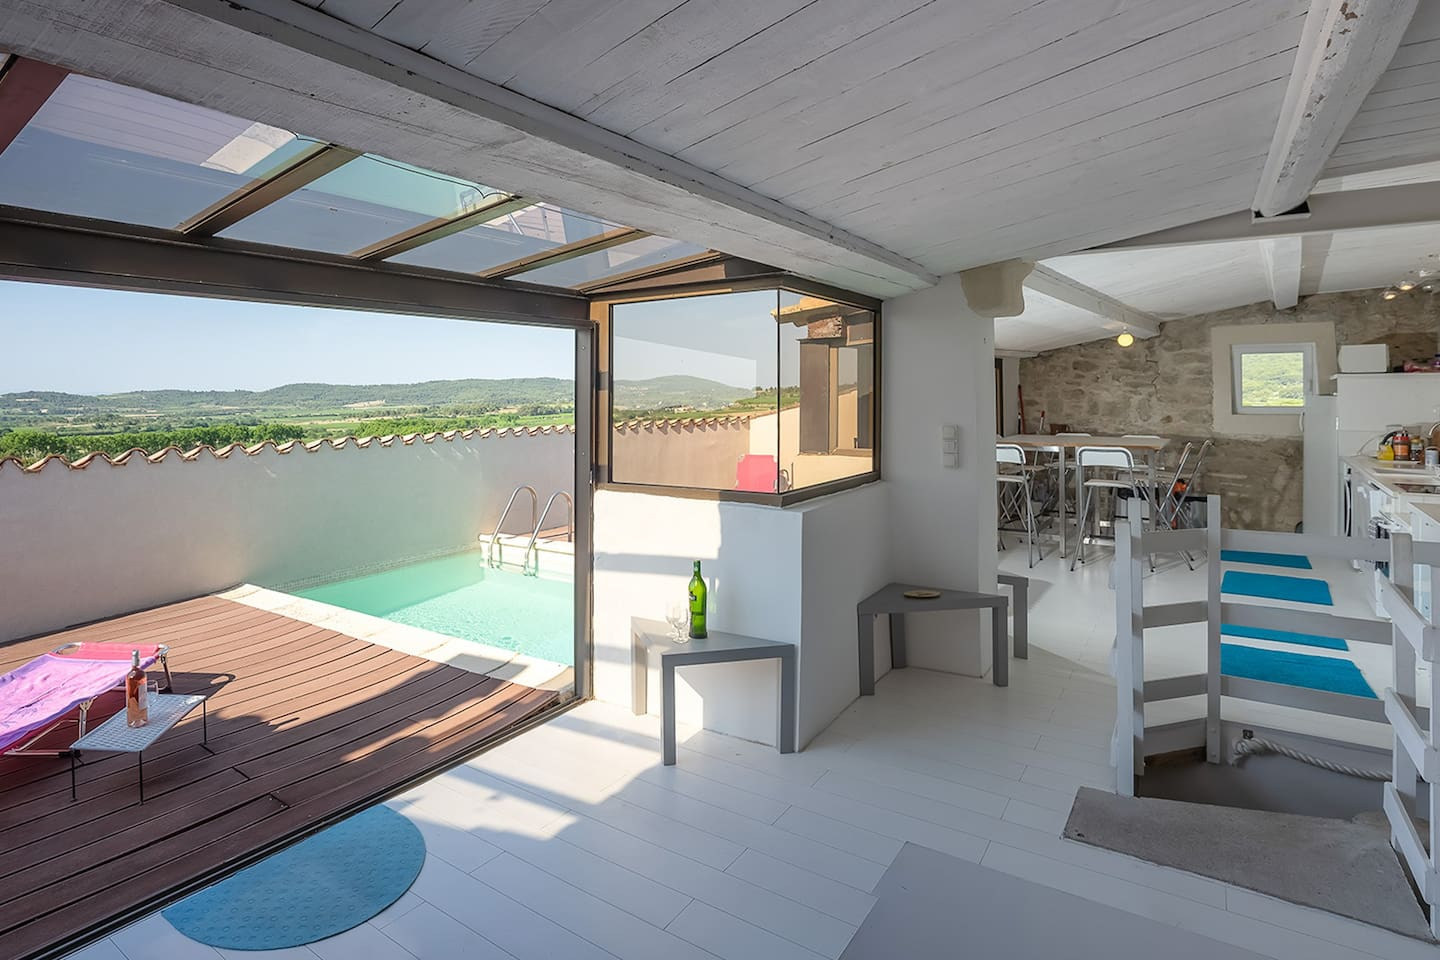 Top floor with roof terrace, pool and summer kitchen.